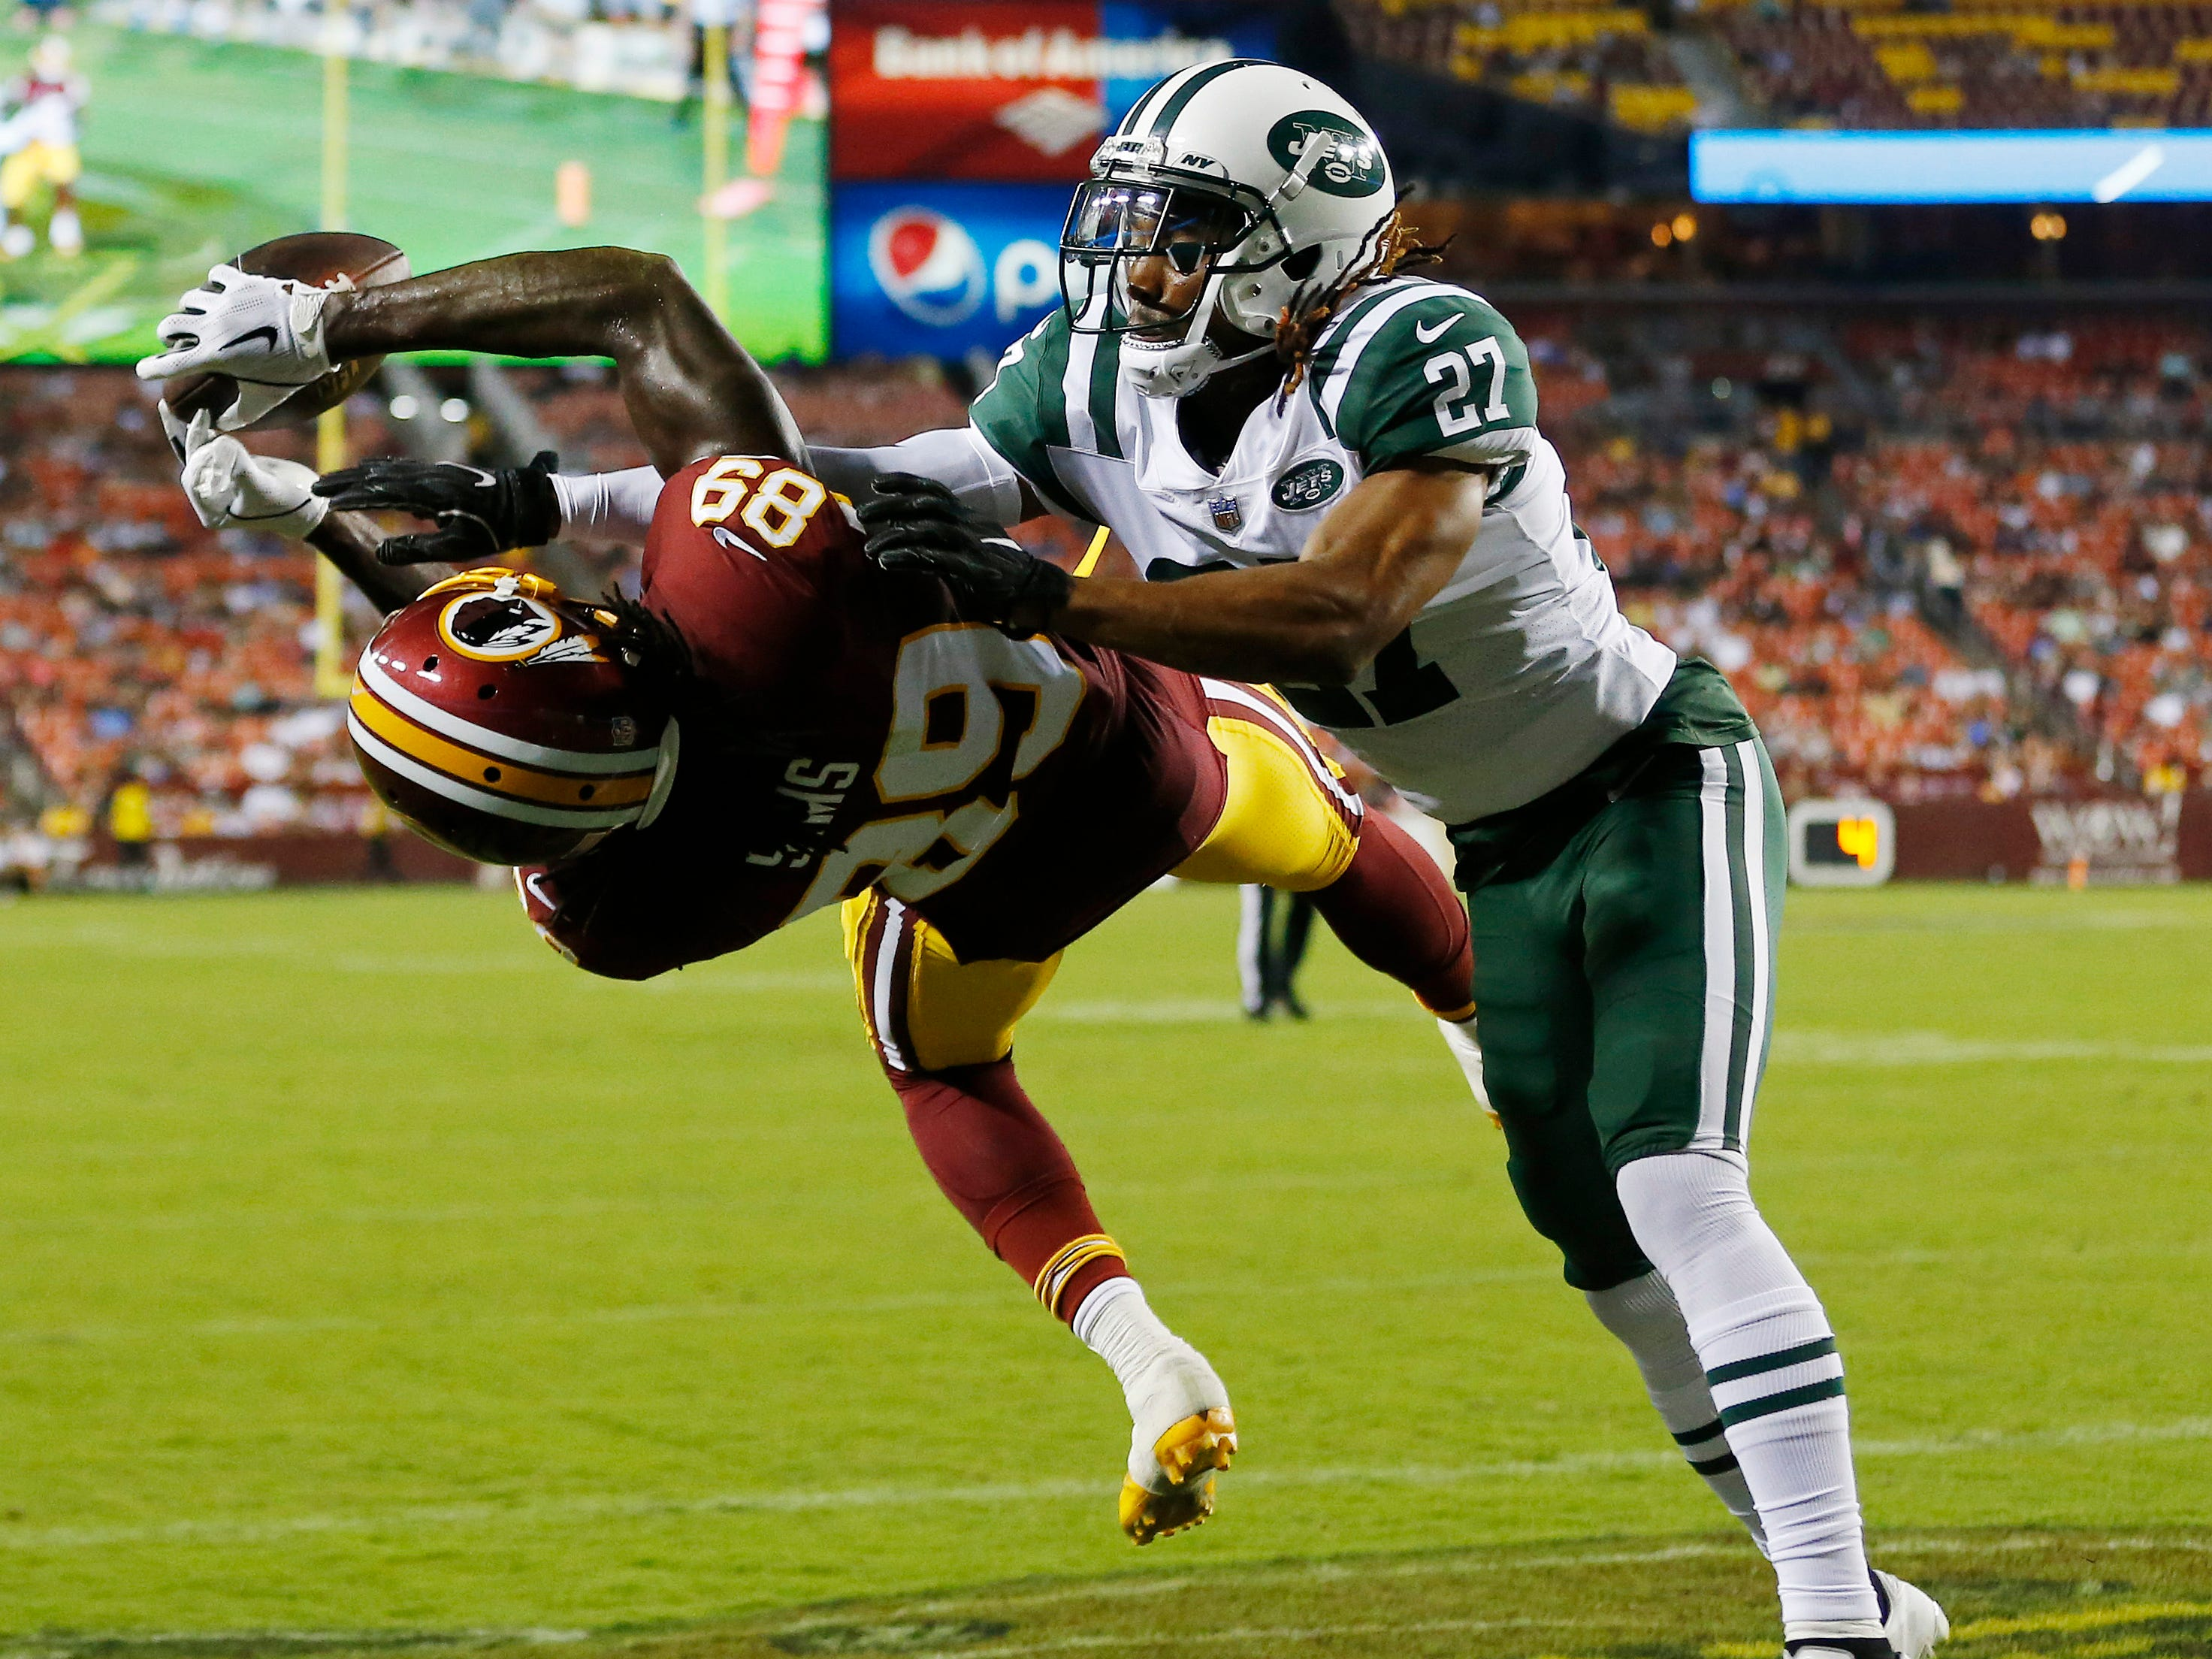 Washington Redskins wide receiver Cam Sims attempts to catch a pass in the end zone as New York Jets cornerback Darryl Roberts defends in the second quarter at FedExField.